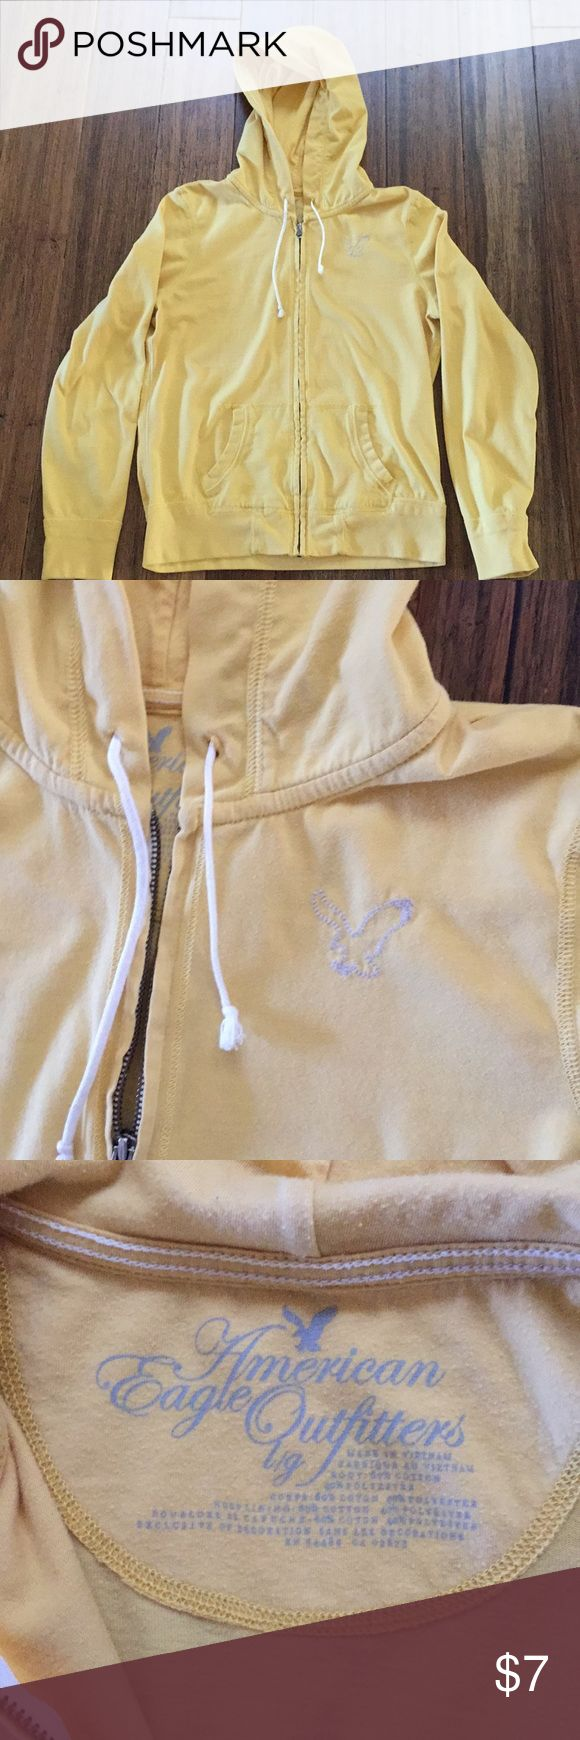 American Eagle yellow zip up hoodie size L Yellow American Eagle Outfitters zip up hoodie. Size Large. Small stain on the bottom back of hoodie American Eagle Outfitters Tops Sweatshirts & Hoodies